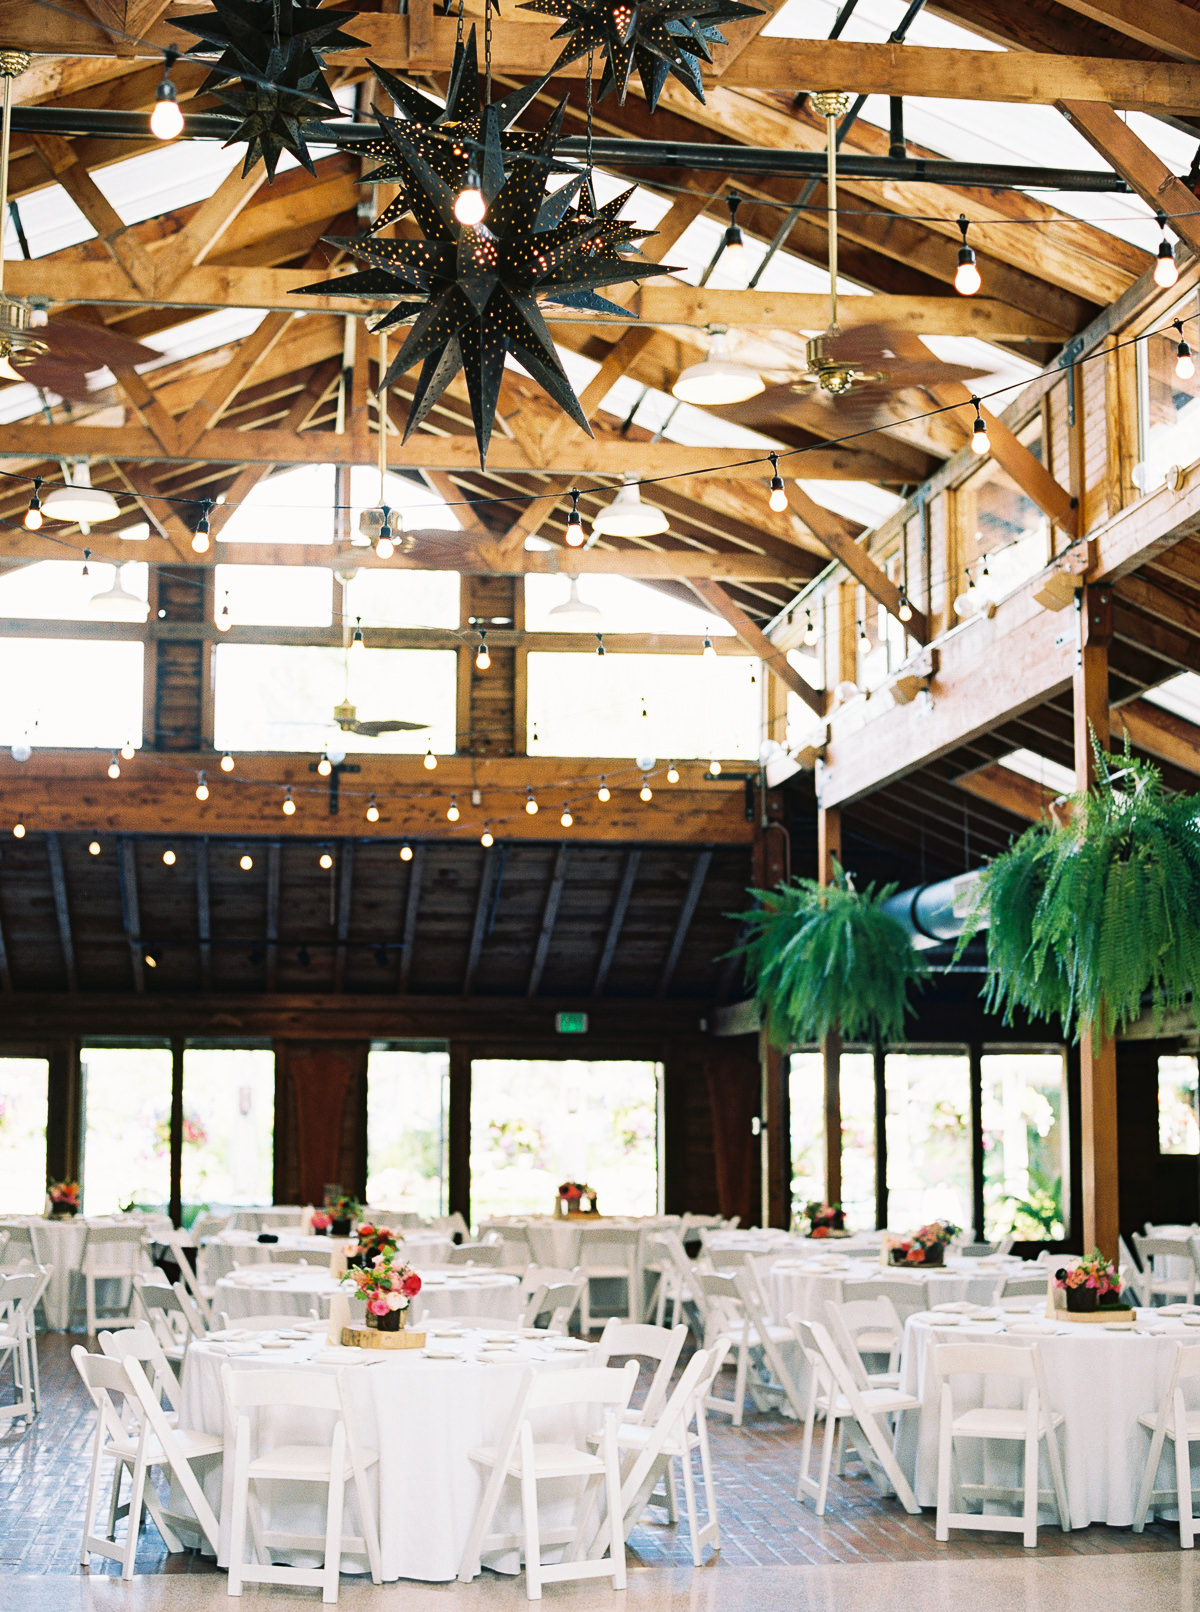 Wedding reception at Kiana Lodge, photographed by Anna Peters